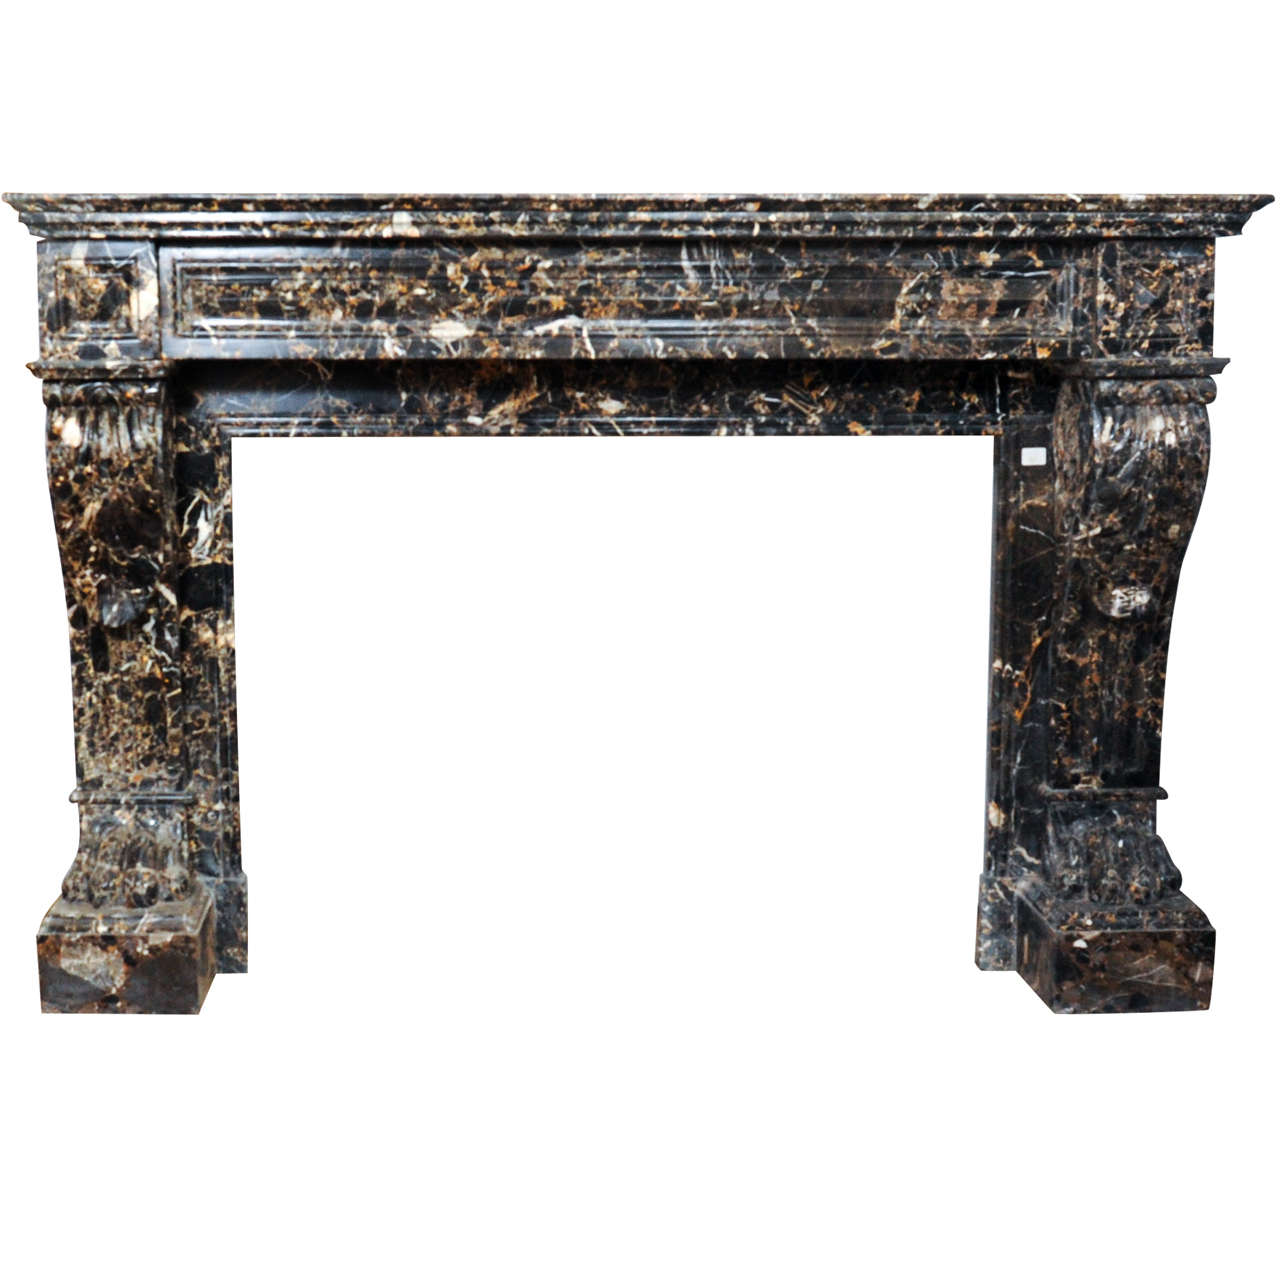 Early 19th century french empire sculpted marble fireplace mantel piece at 1stdibs - Fireplace mantel piece ...